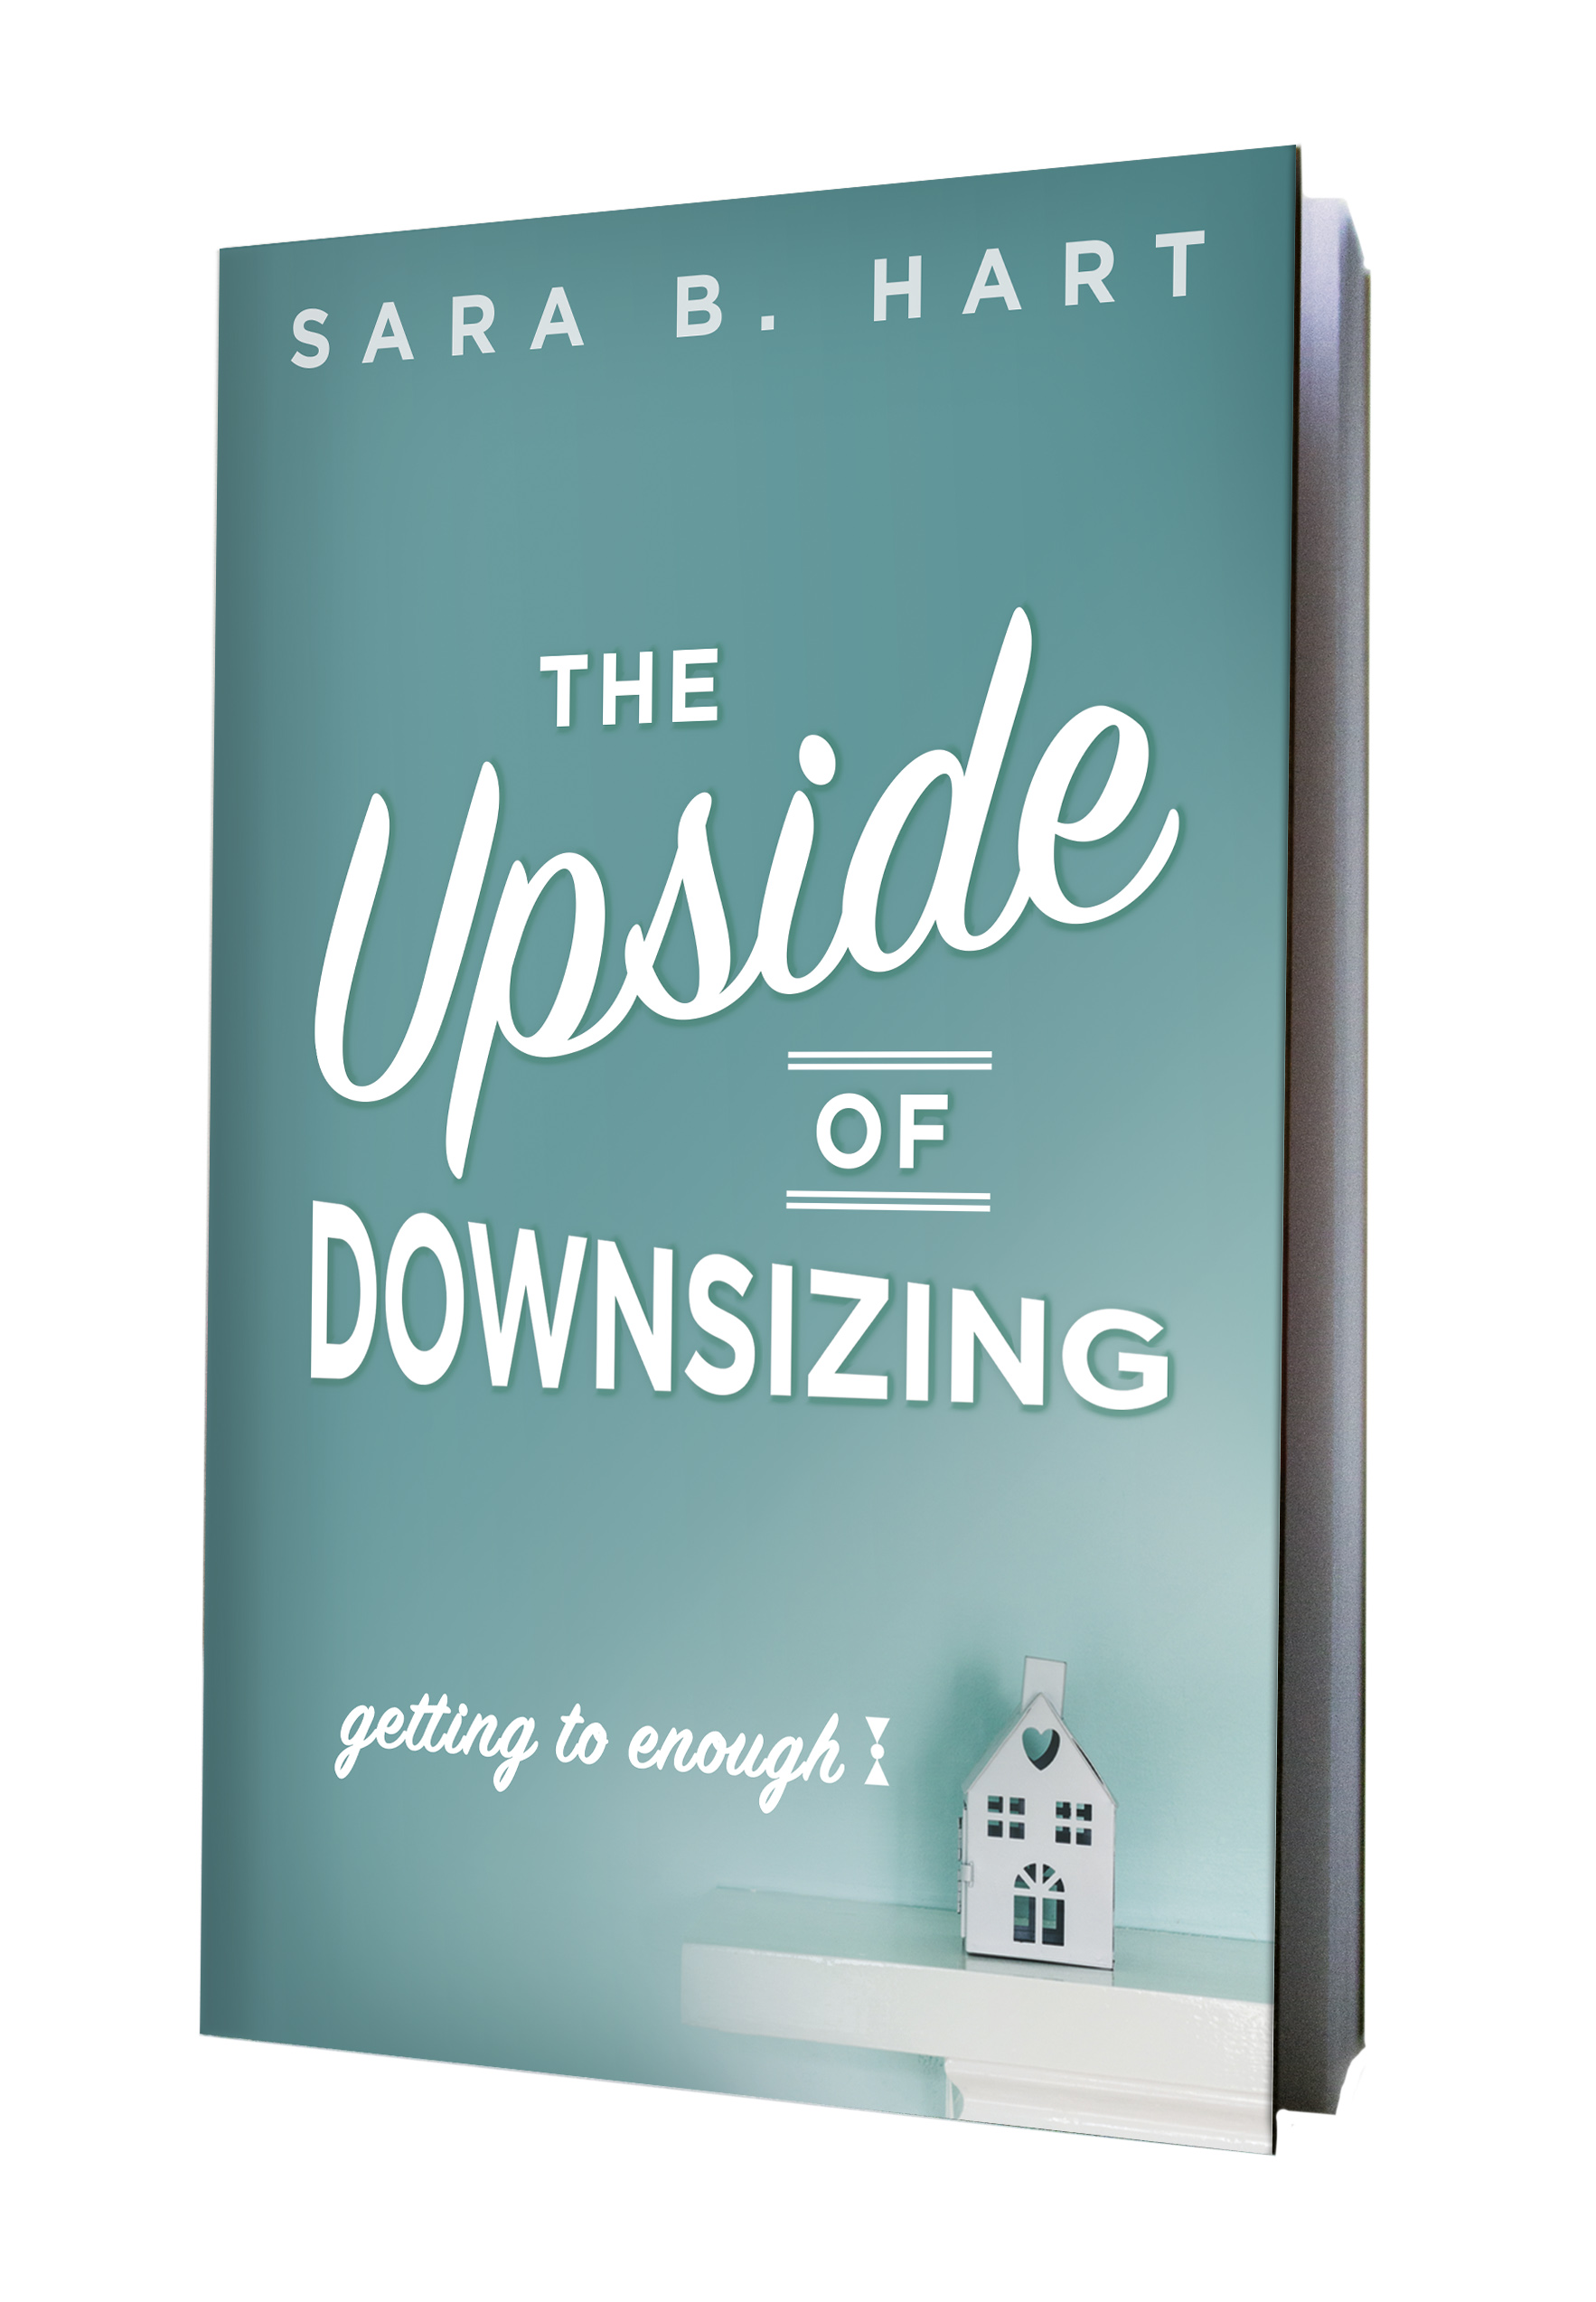 Sara Hart: The Upside to Downsizing, book cover design